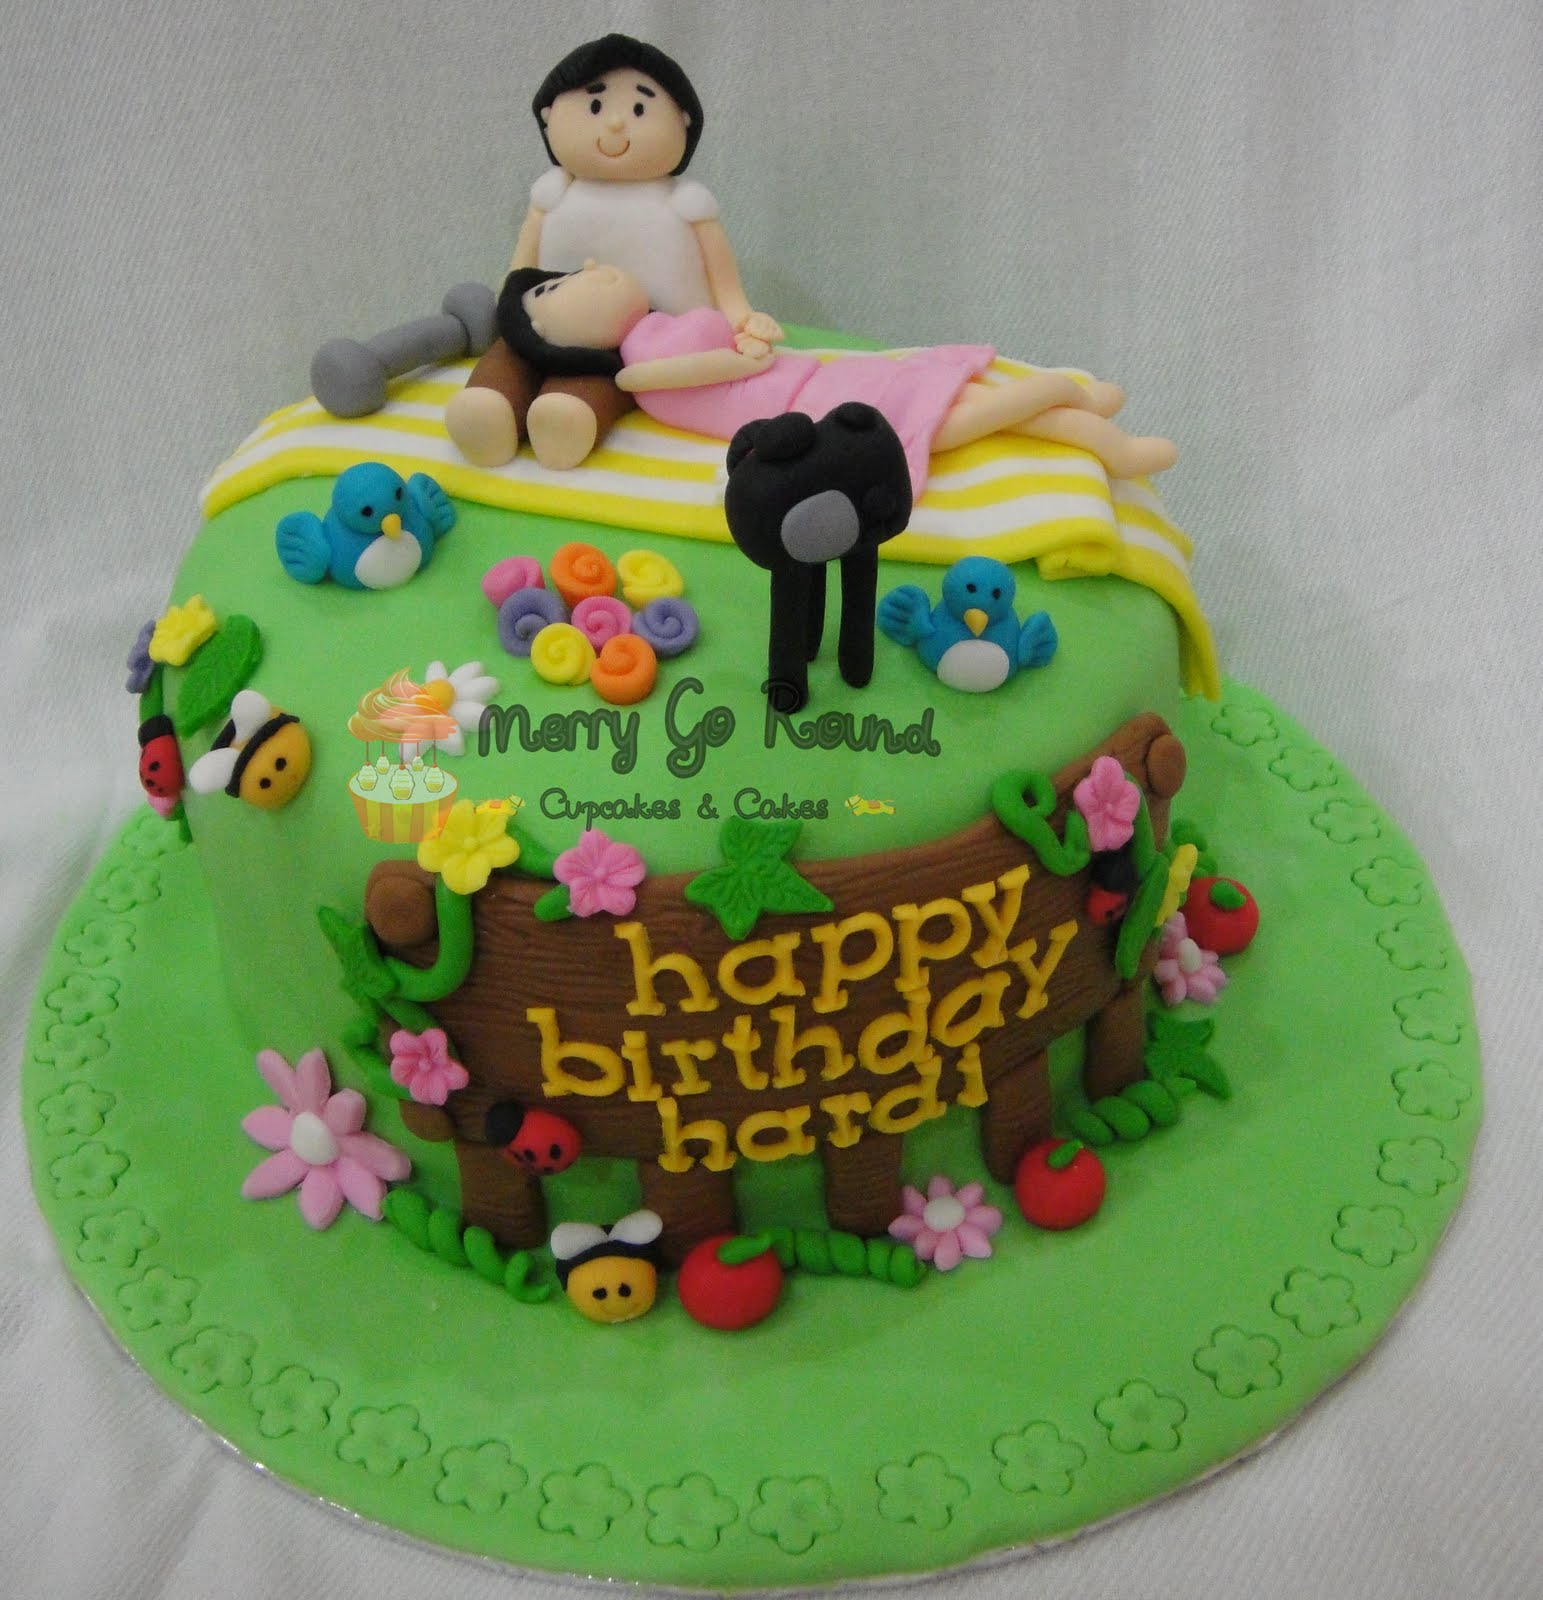 images of cakes with garden theme - photo #45